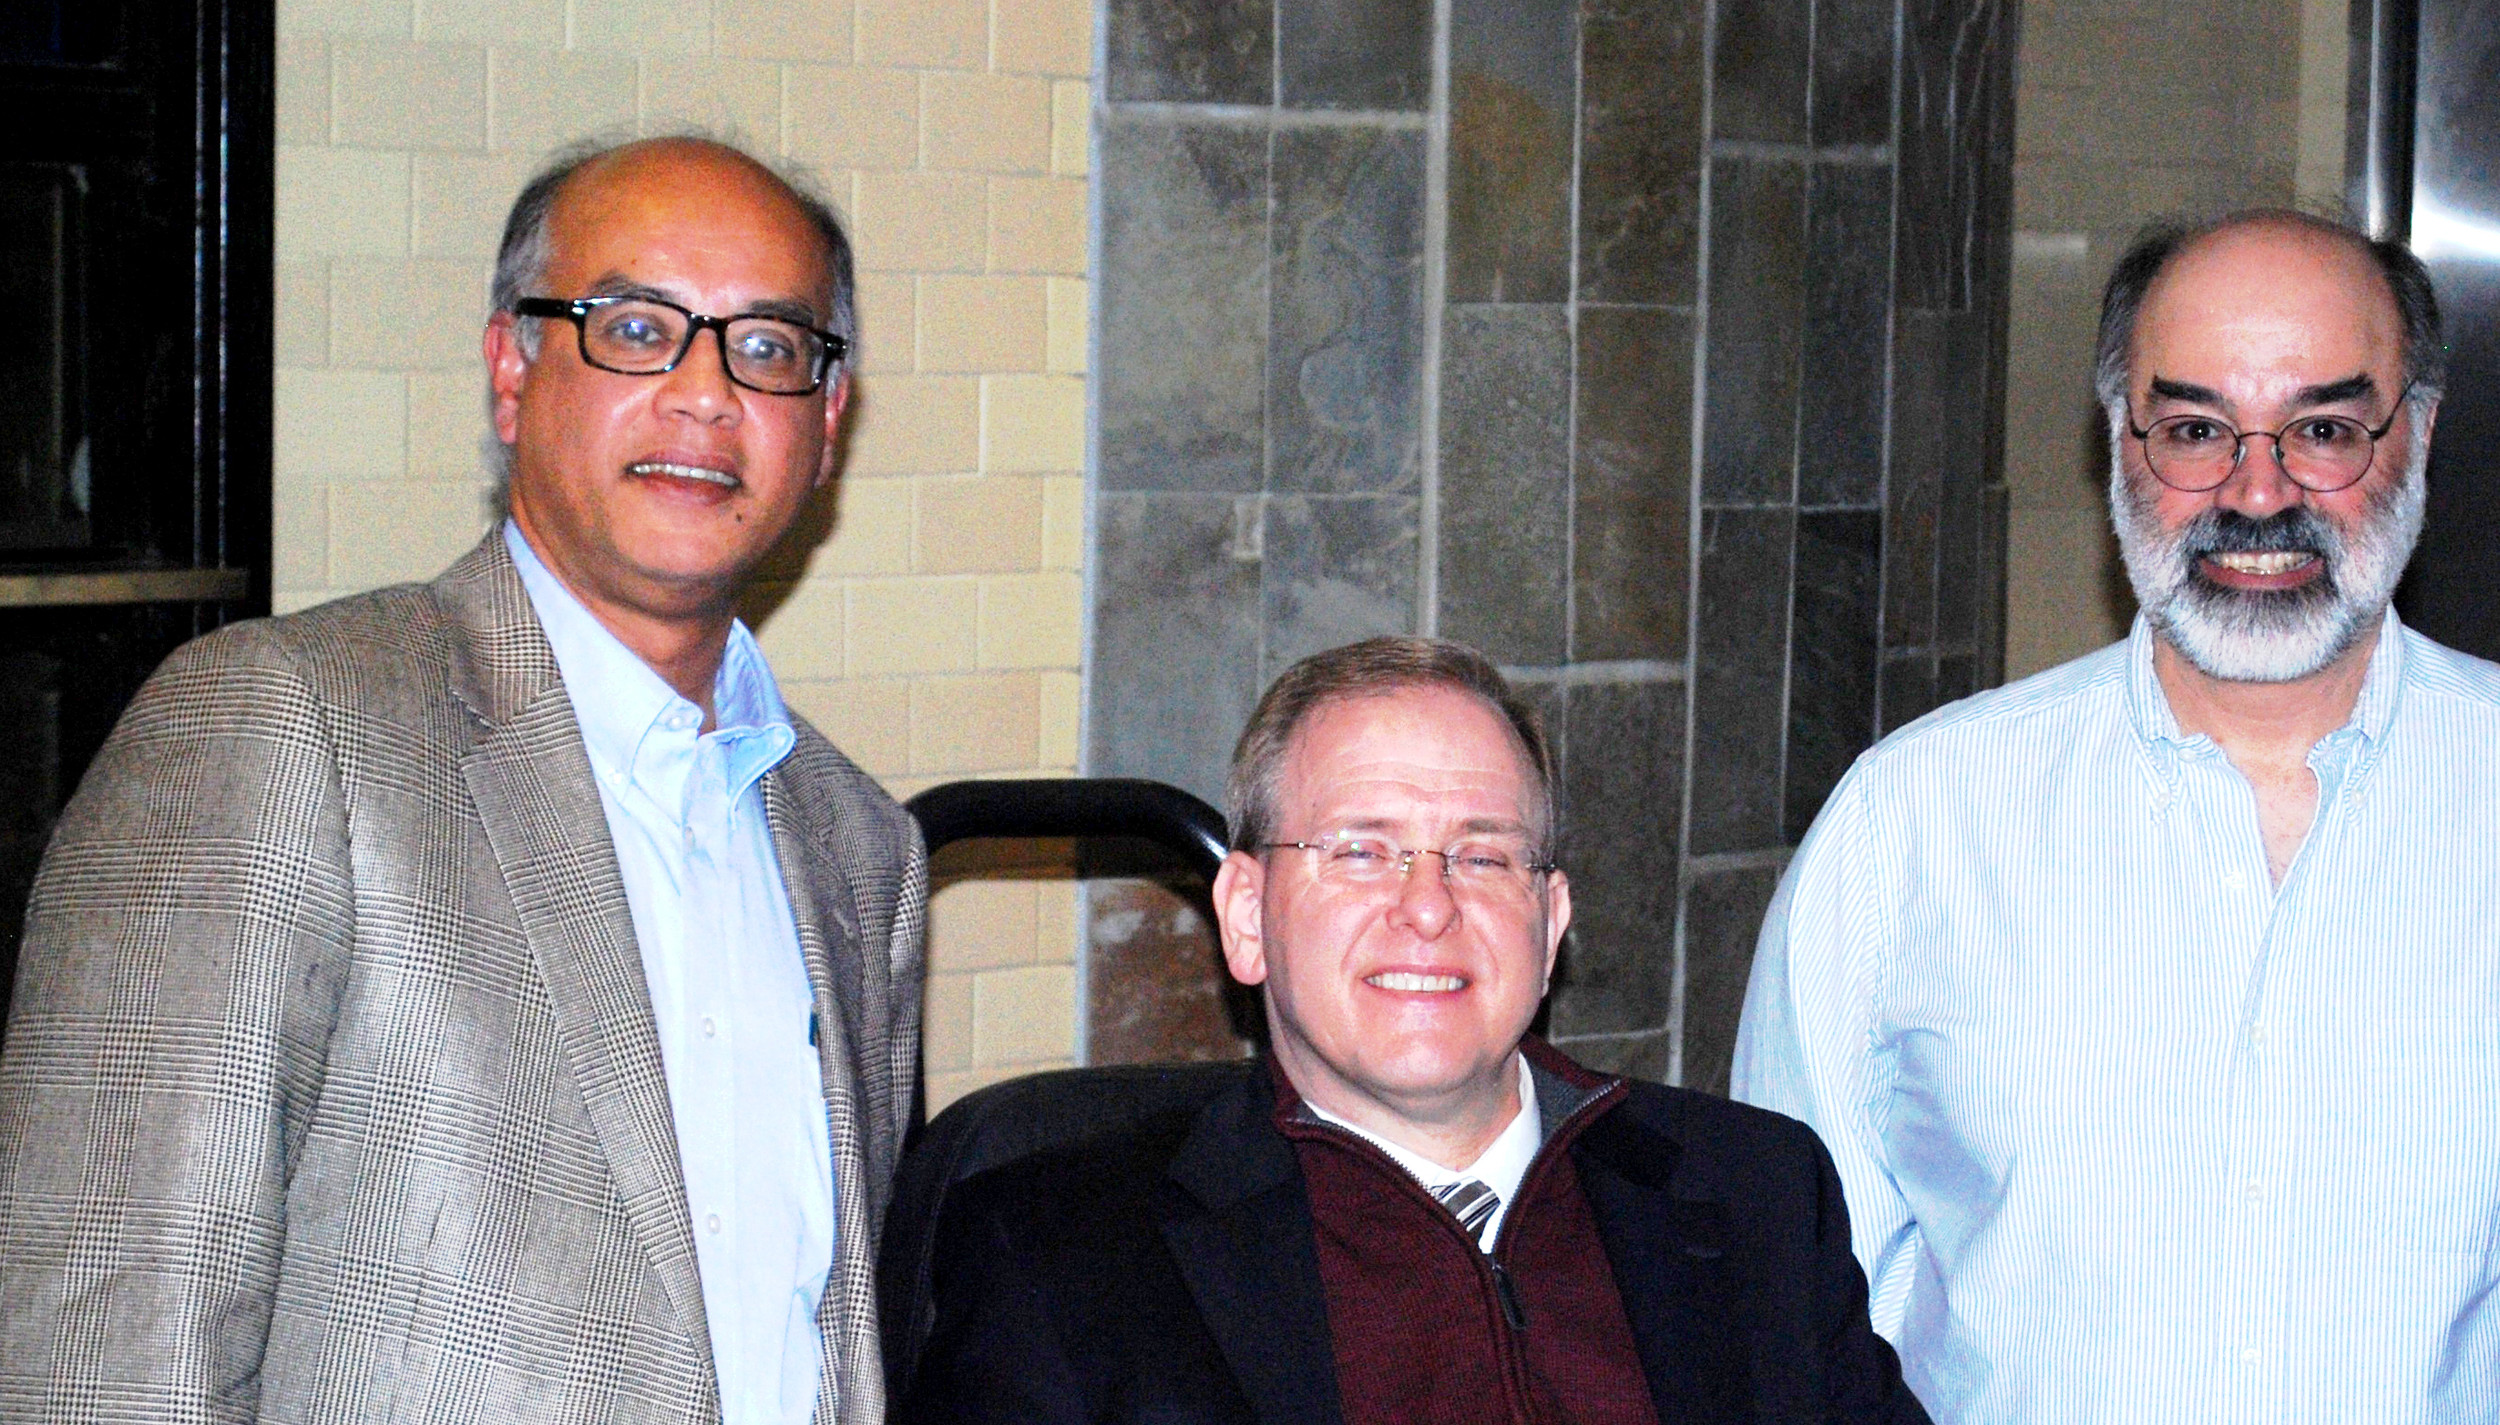 Kollol Pal, CEO of Mnemosyne, Rep. Jim Langevin, and Frank Menniti, chief science officer of Mnemosyne, at a recent meeting to discuss the company's efforts to develop new therapeutic approaches for traumatic brain injry and post-traumatic stress disorder.